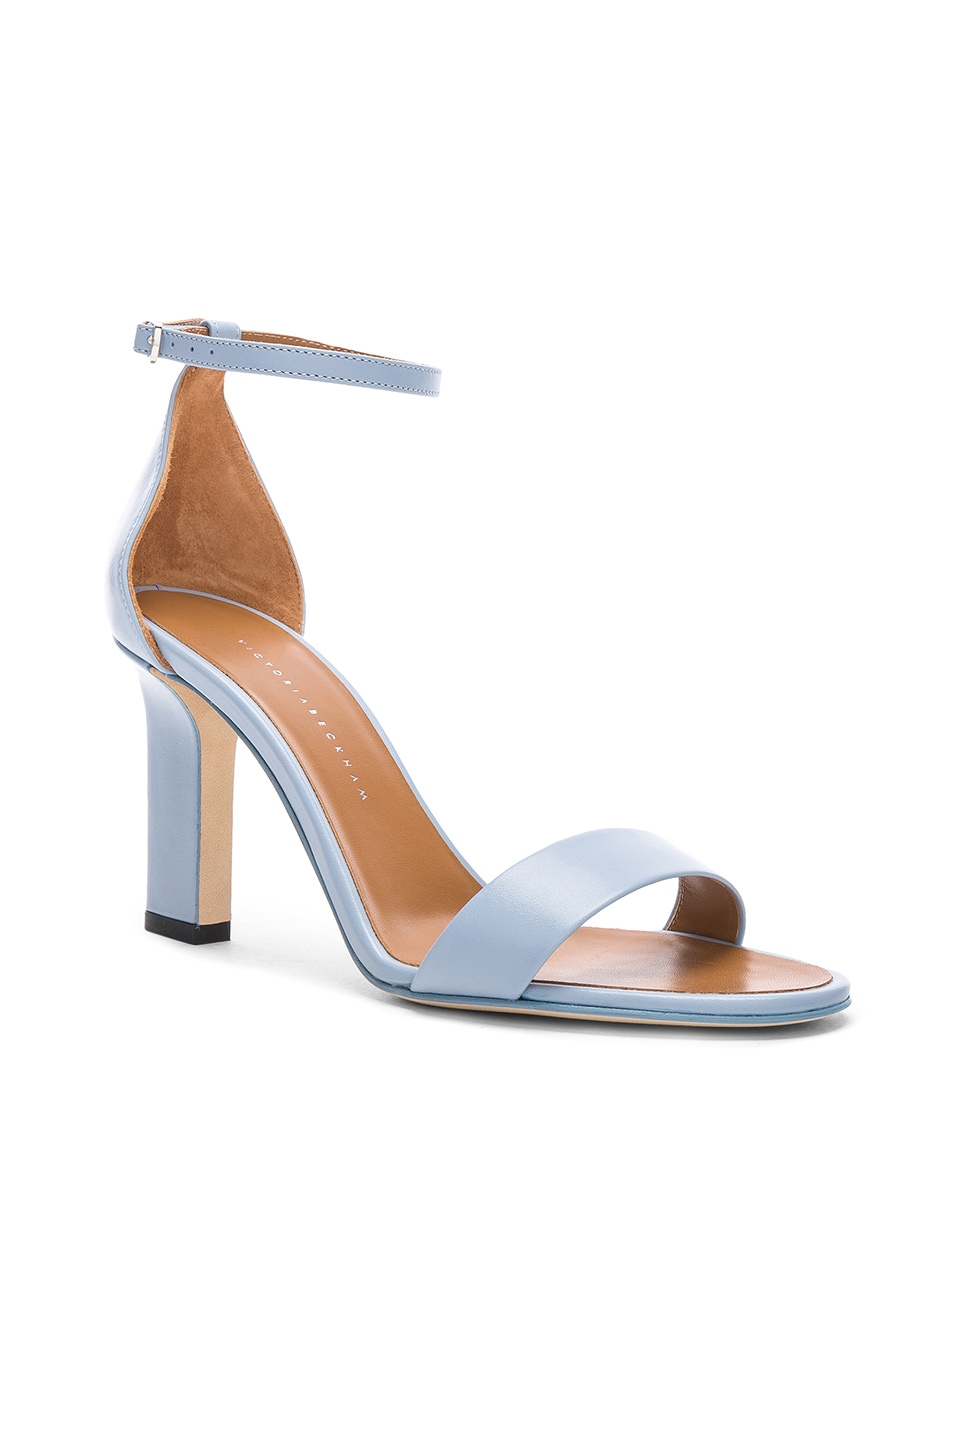 Image 2 of Victoria Beckham Anna Sandal in Baby Blue